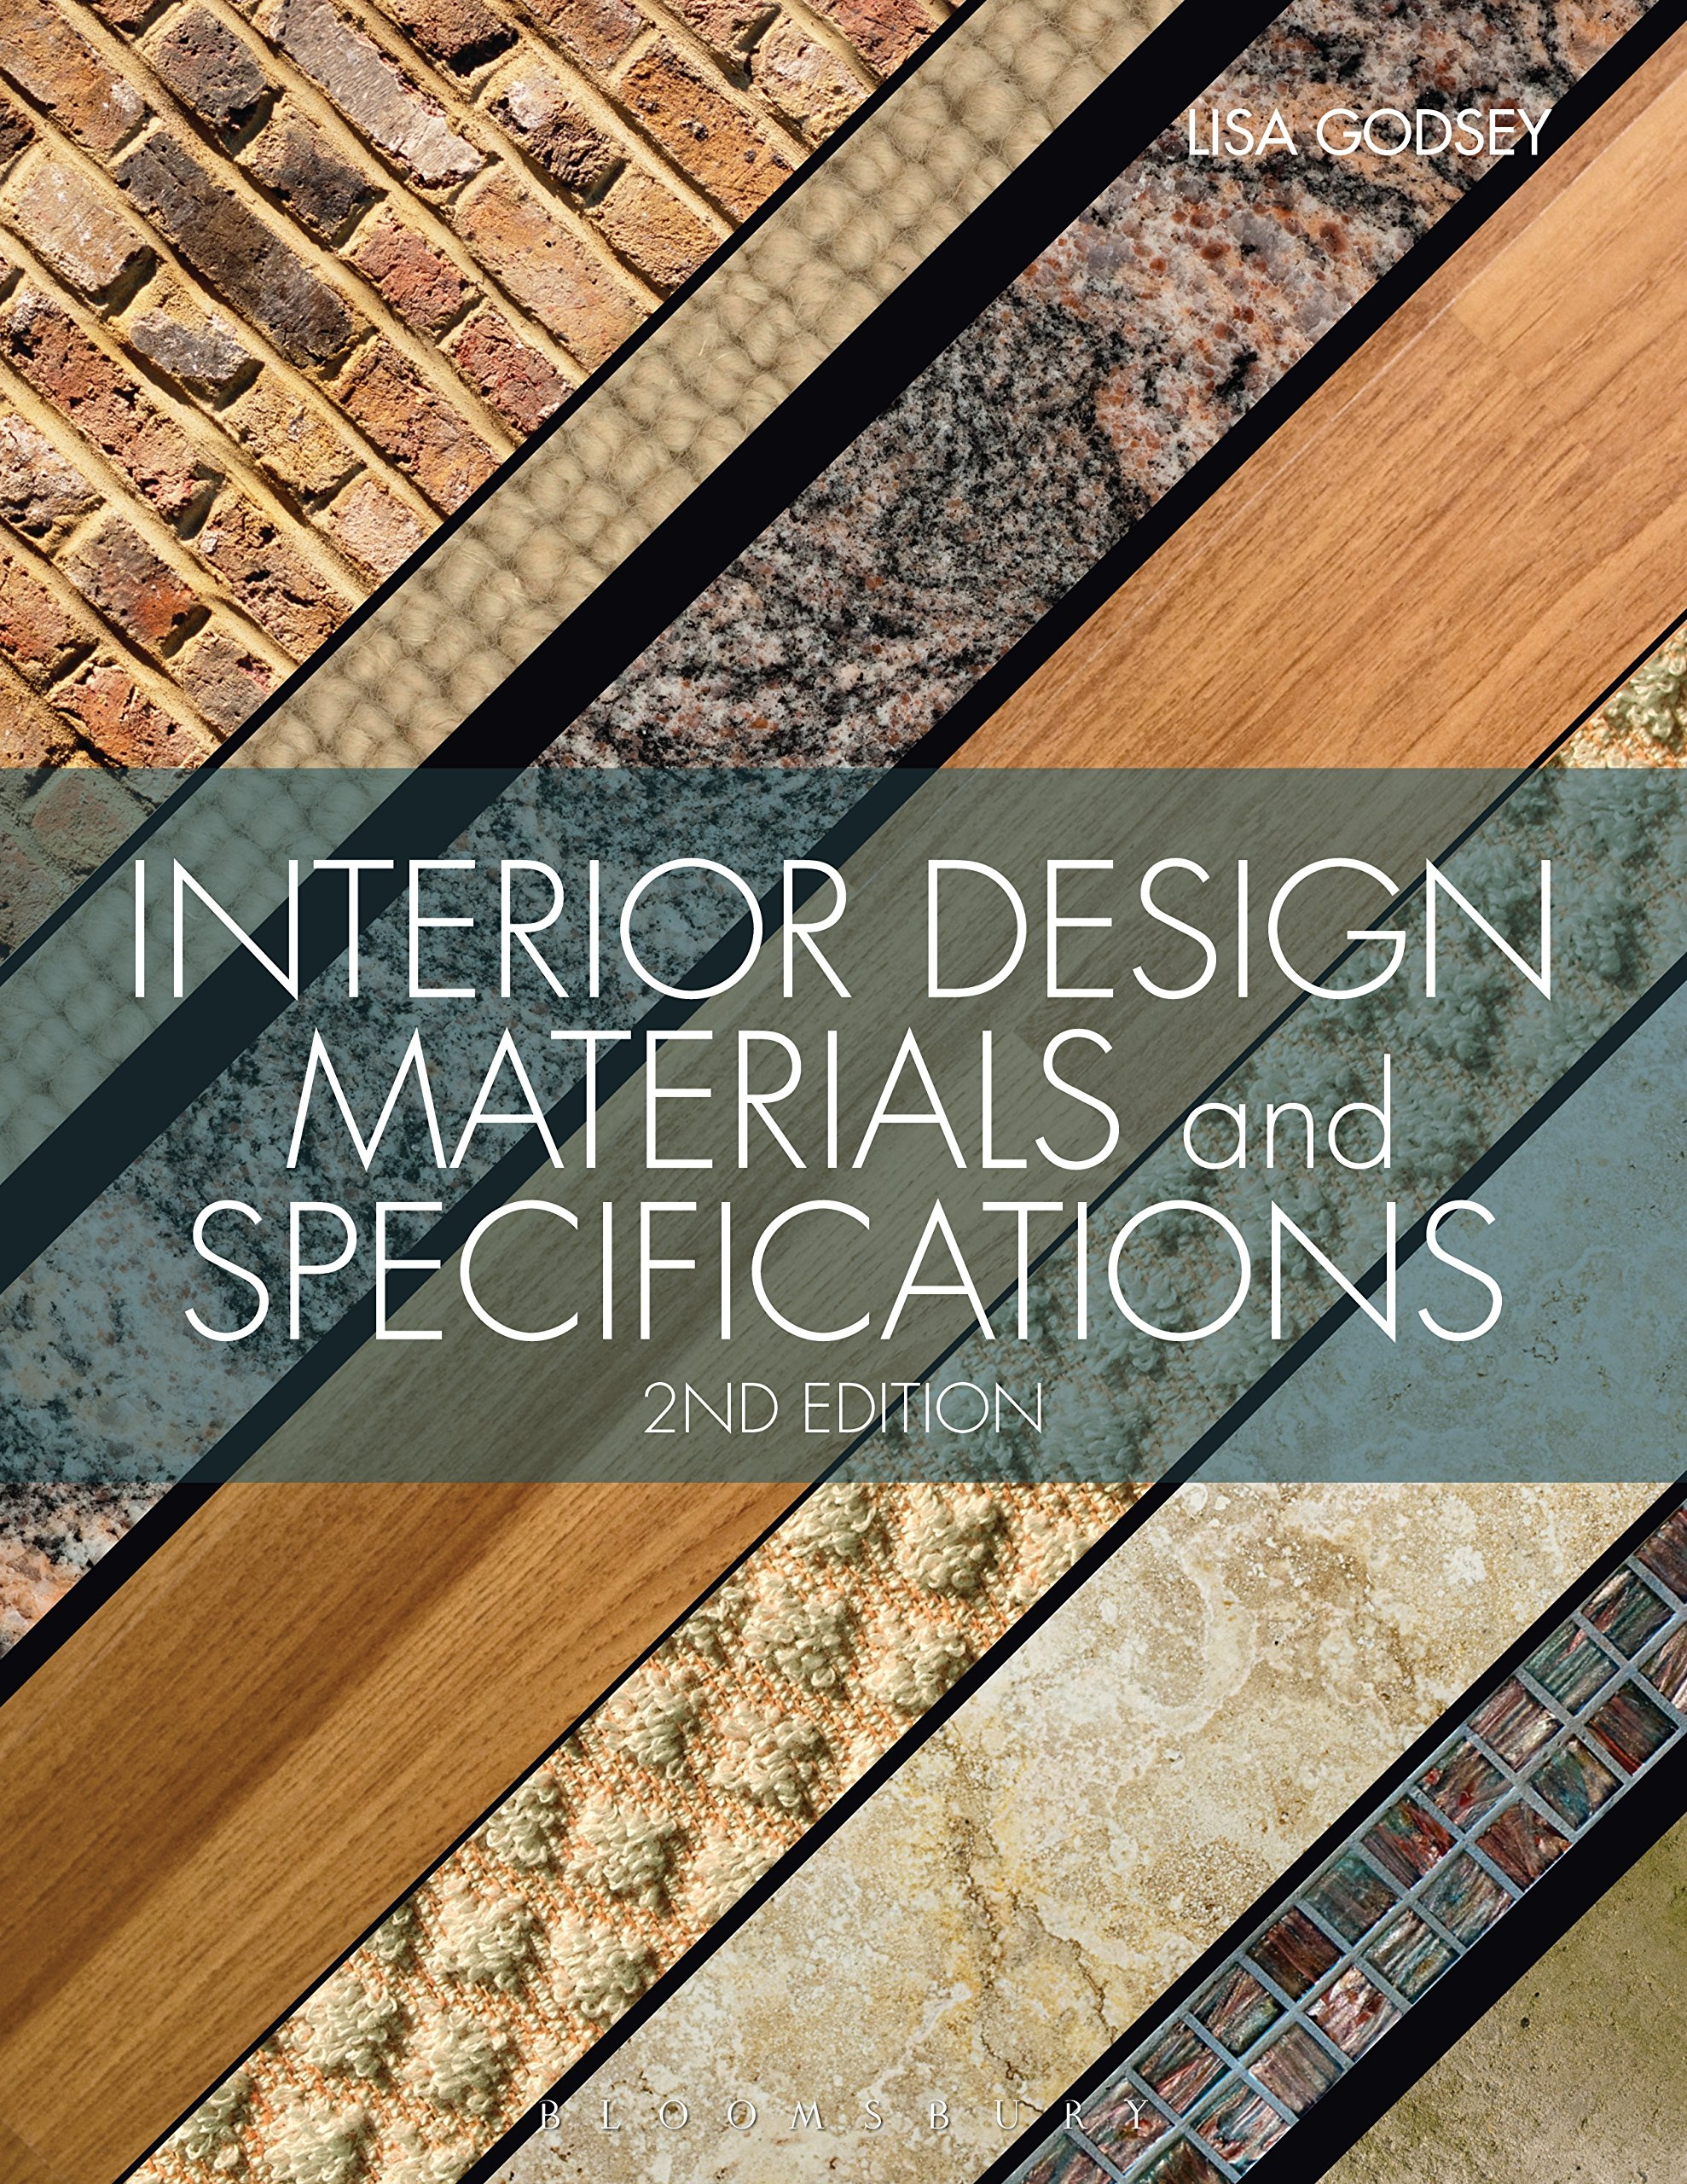 Interior Design Materials And Specifications Amazoncouk Lisa Godsey 8601400006603 Books